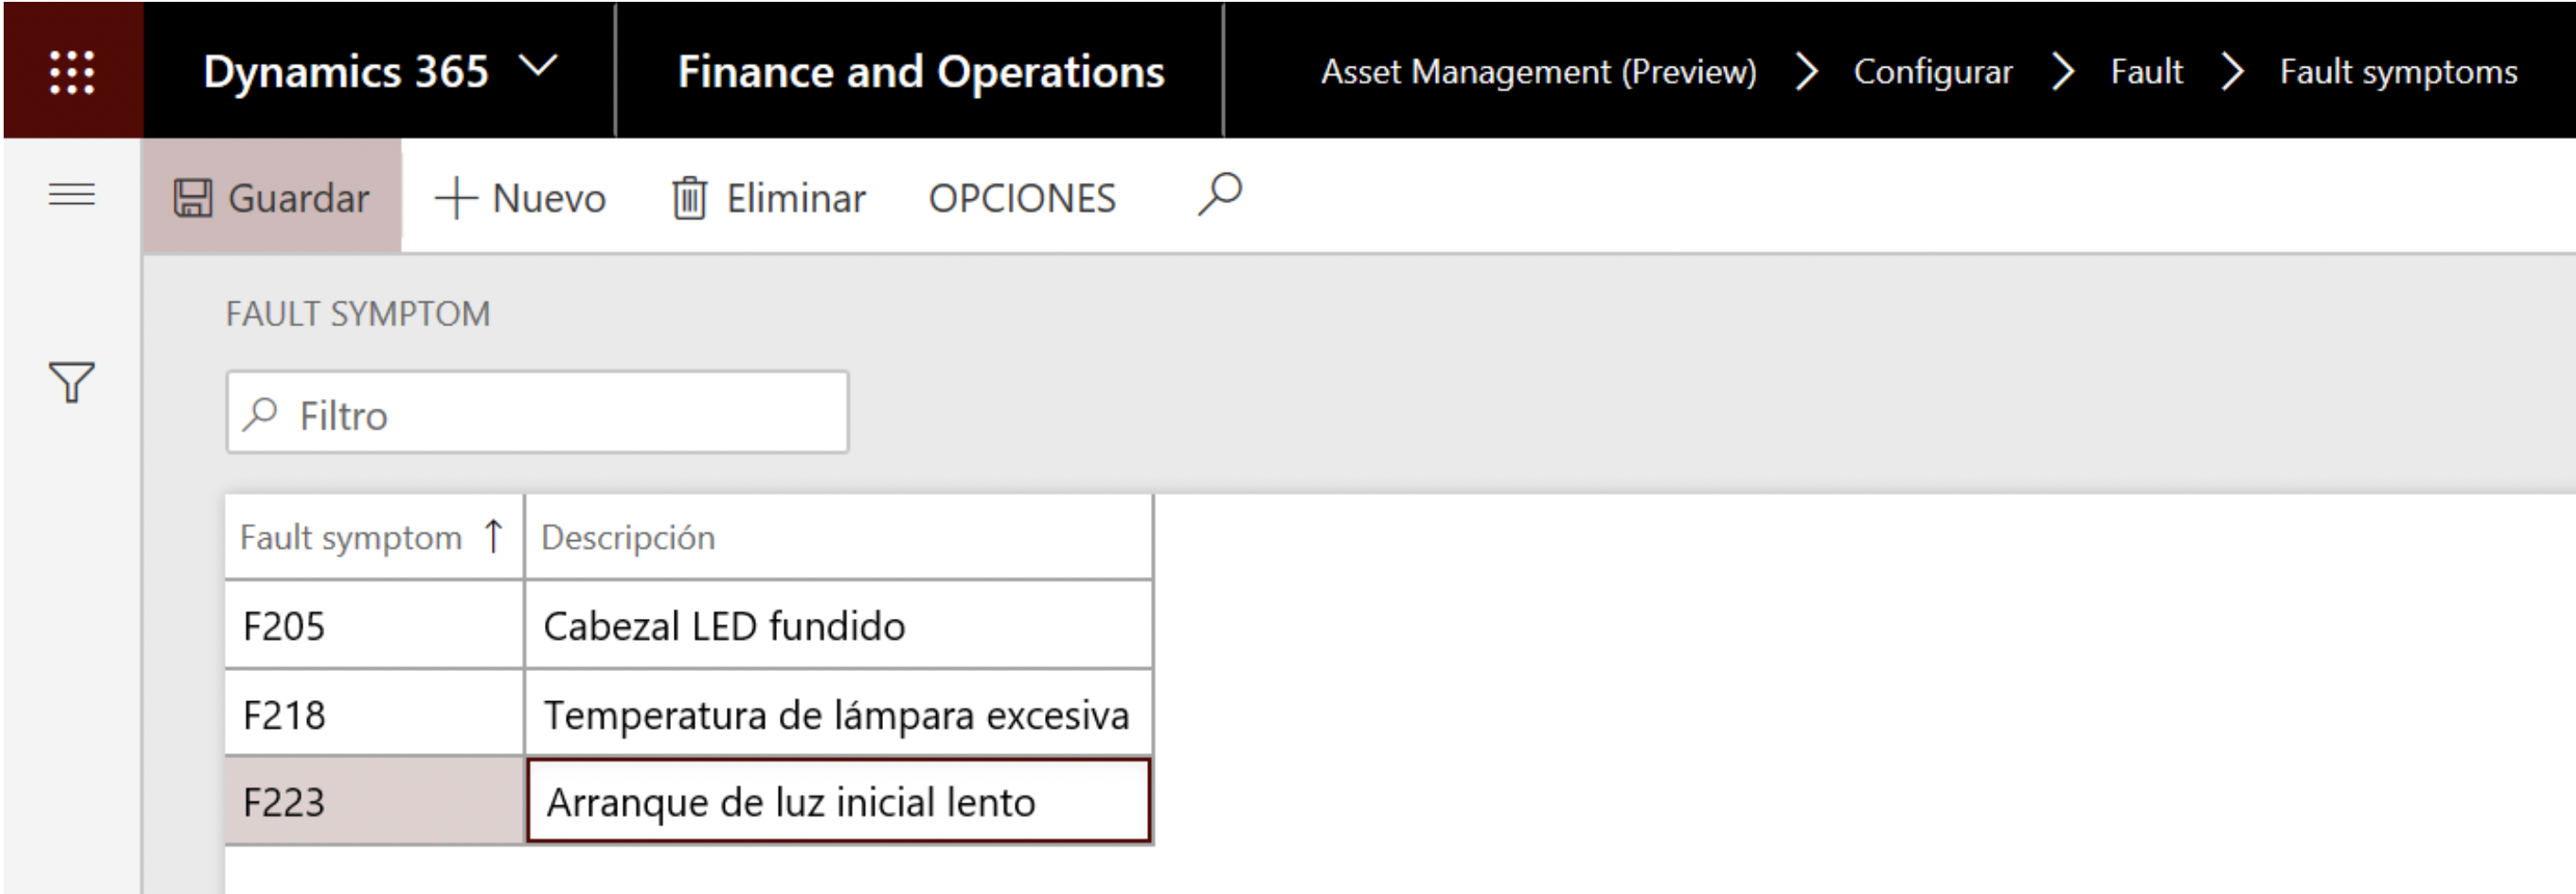 ERD - Dynamics365 Finance Operations - Gestión Activos ERP - 2.13